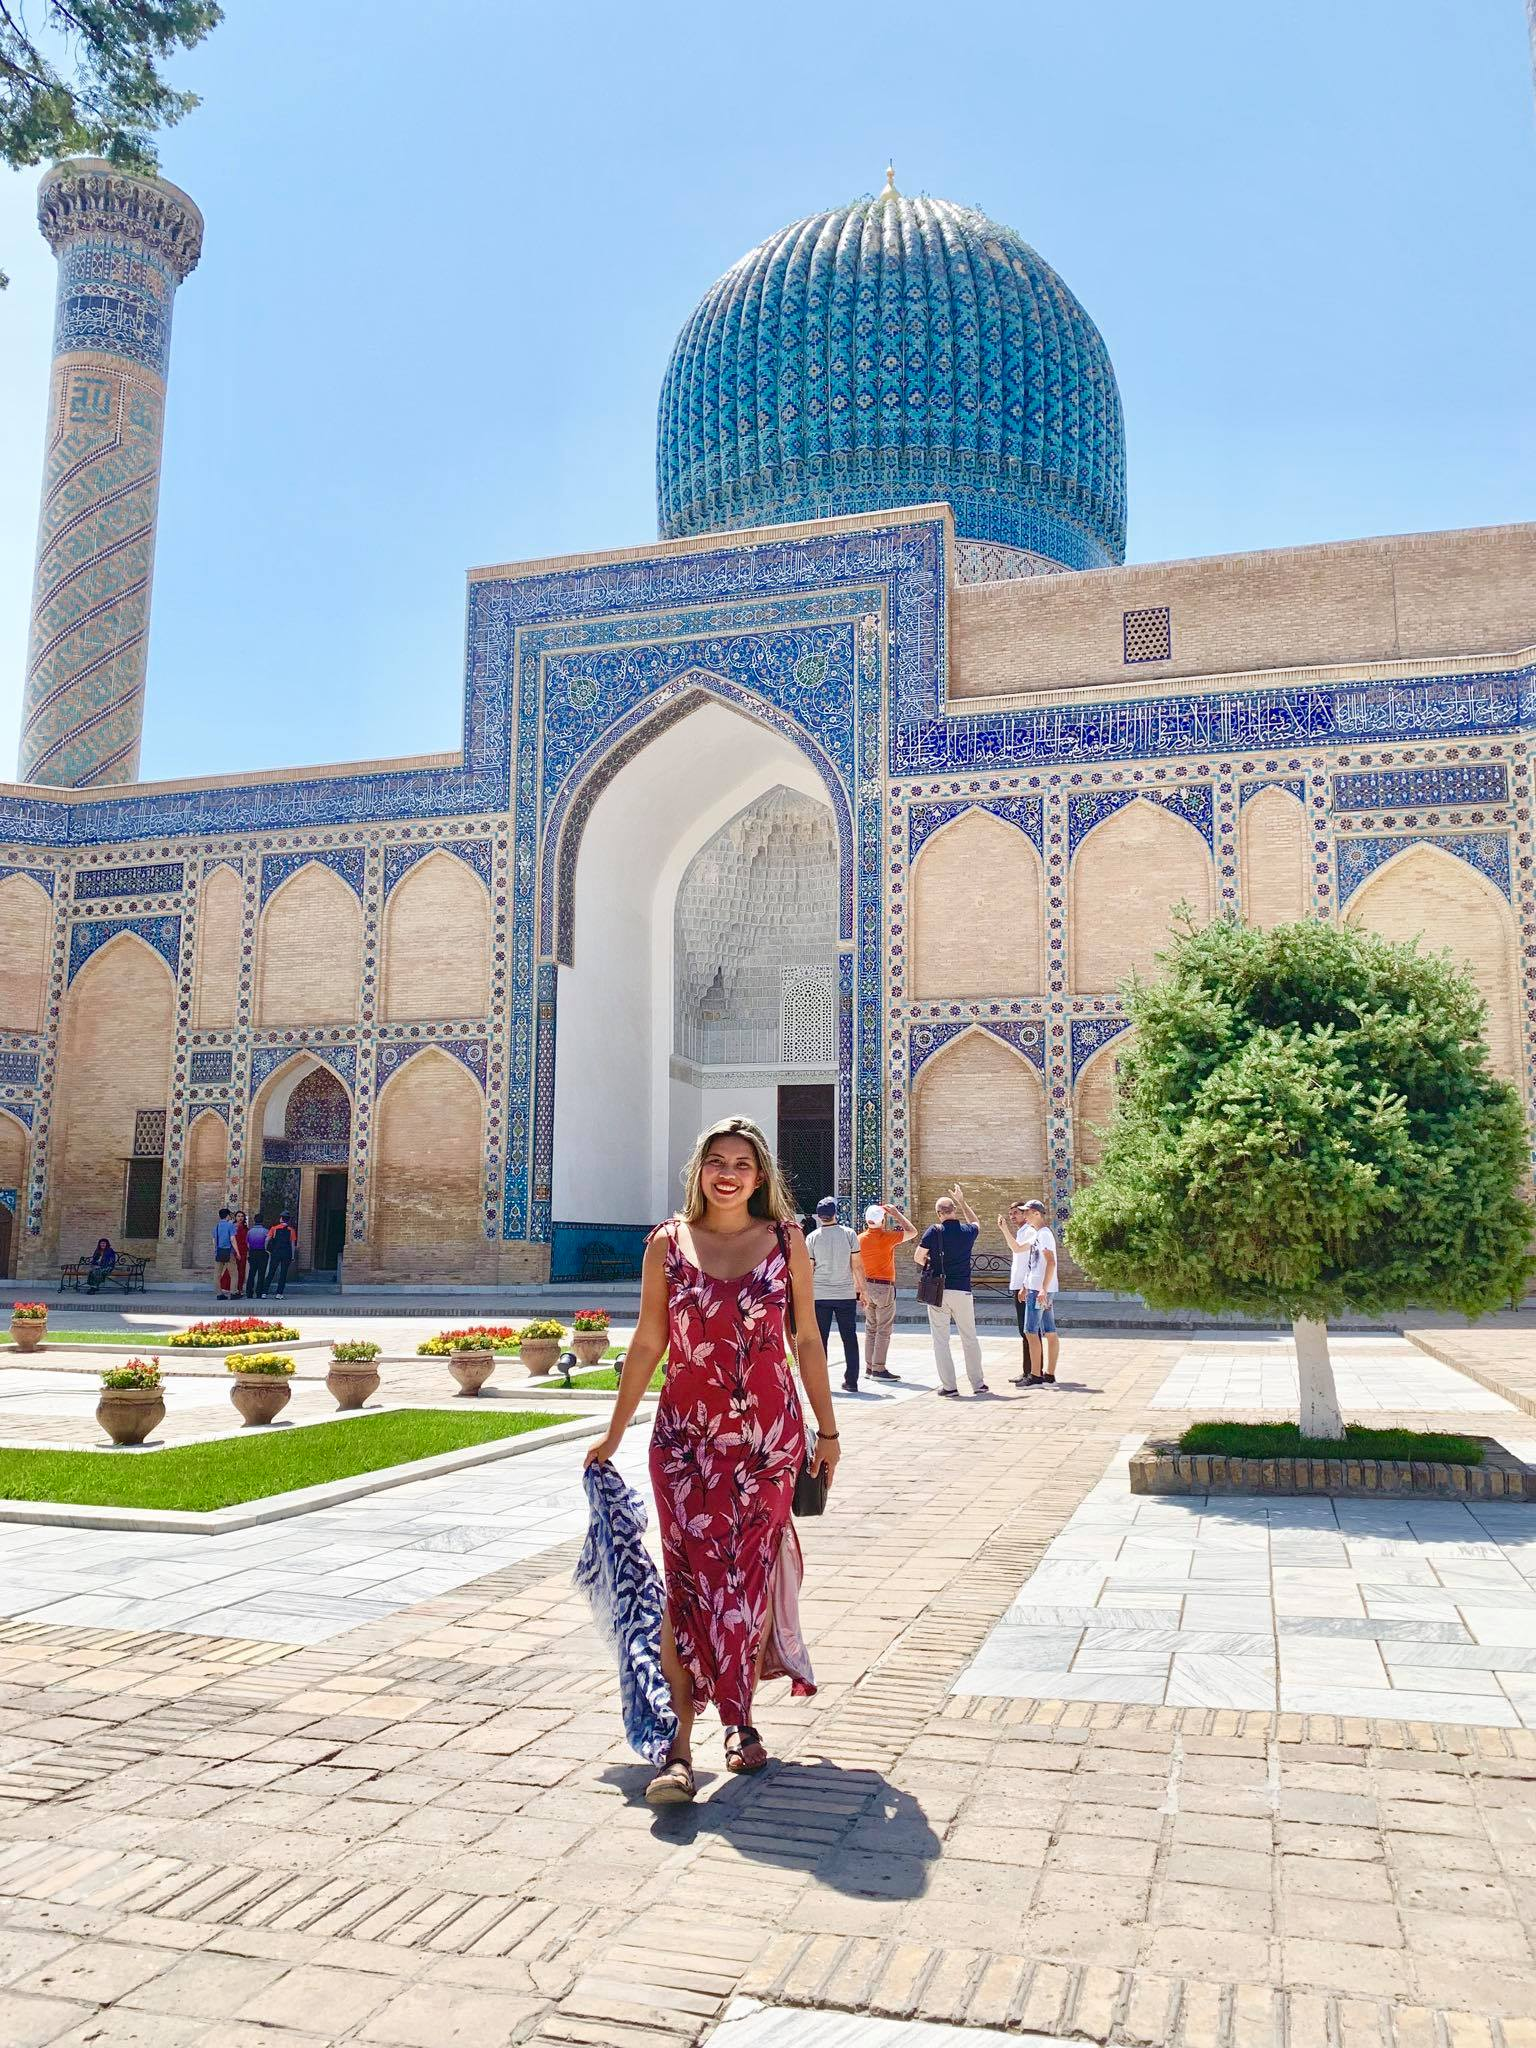 Kach Solo Travels in 2019 Hello from Samarqand  Samarkand in the southeastern part of Uzbekistan7.jpg